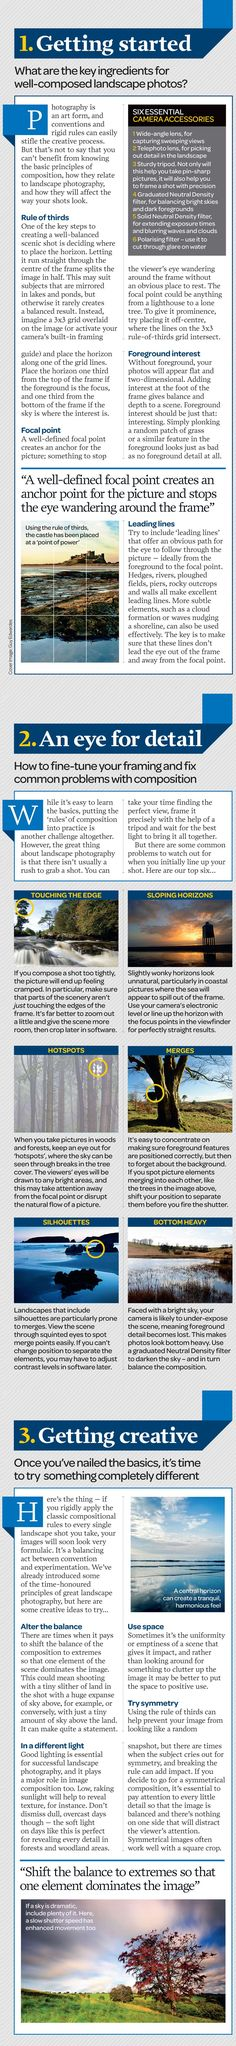 Landscape photography from idea to execution: free photography cheat sheet